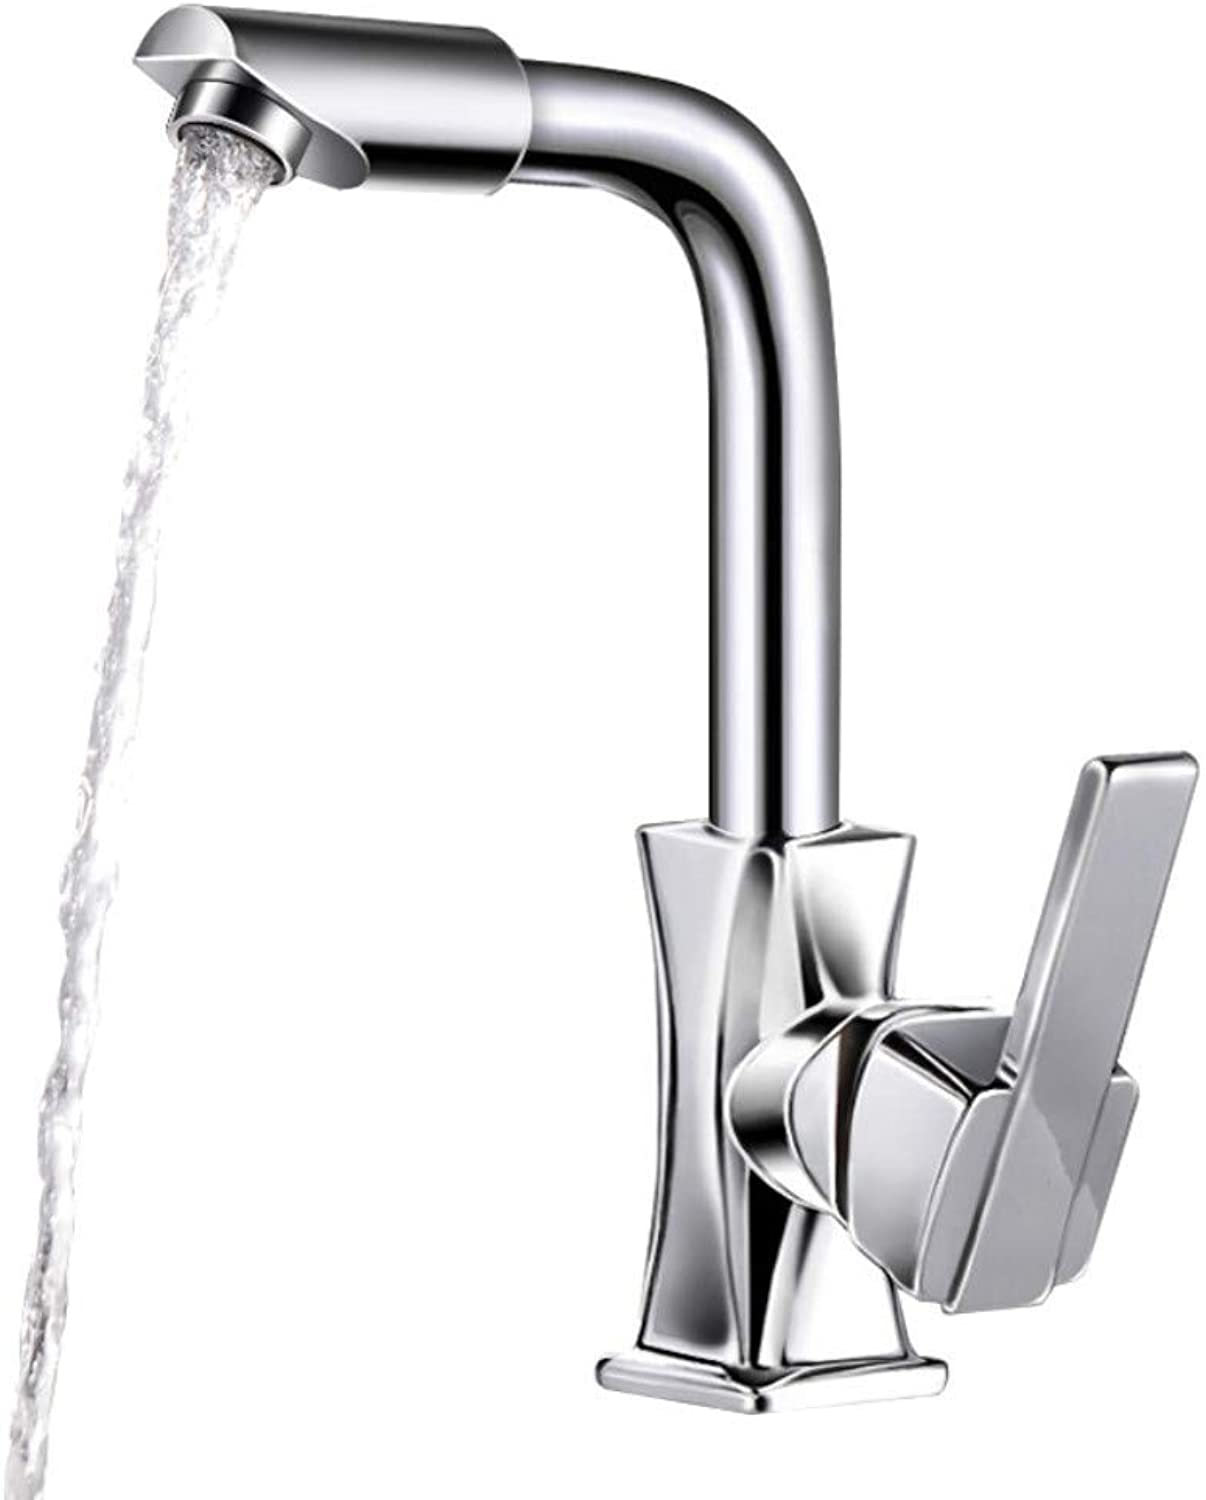 Water Tap Faucet Hot and Cold Basin Basin Washbasin Faucet Kitchen Sink Copper Lead-Free redatable Faucet